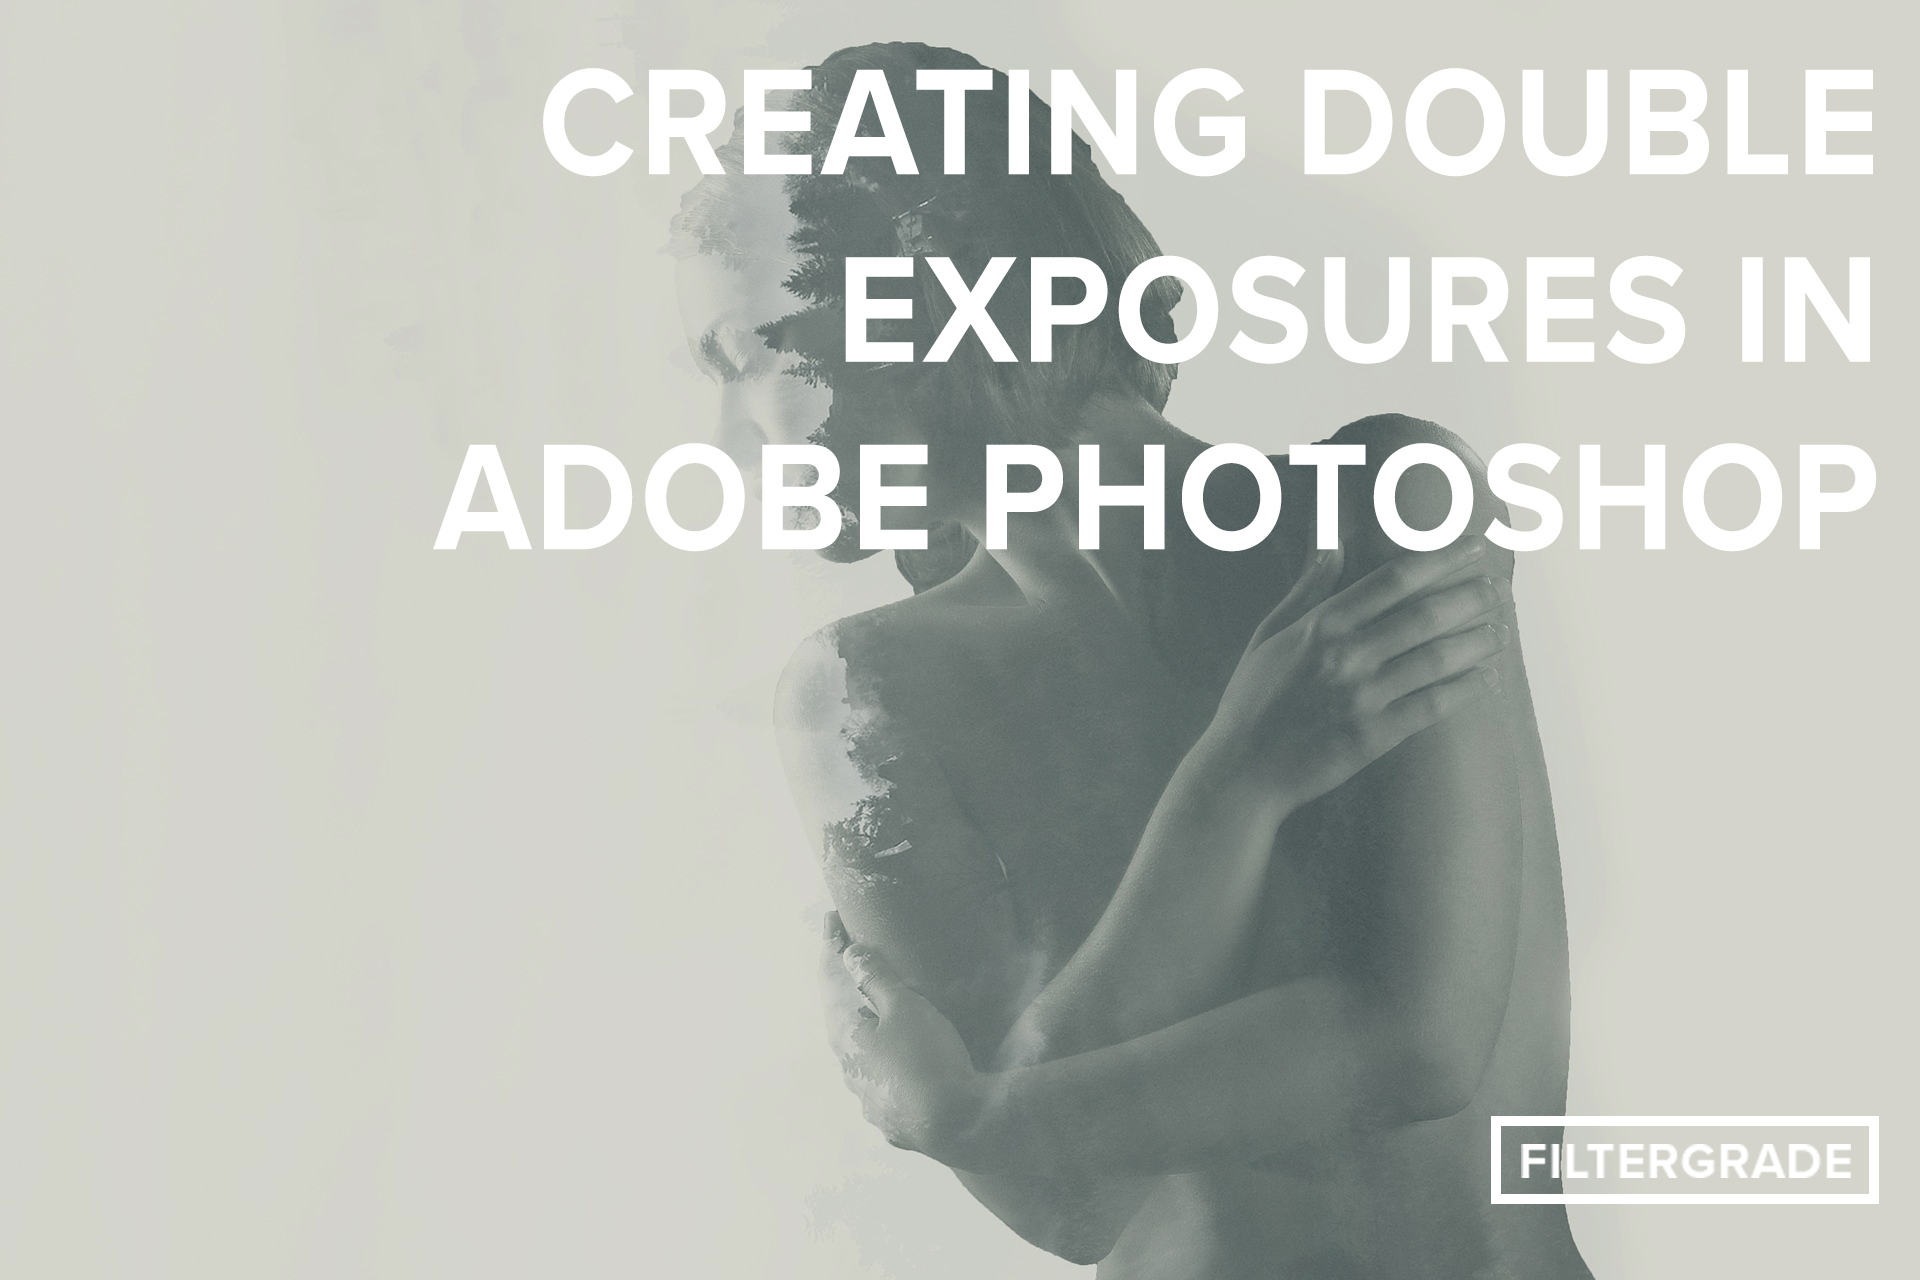 Featured Creating Double Exposures in Adobe Photoshop - FilterGrade Blog